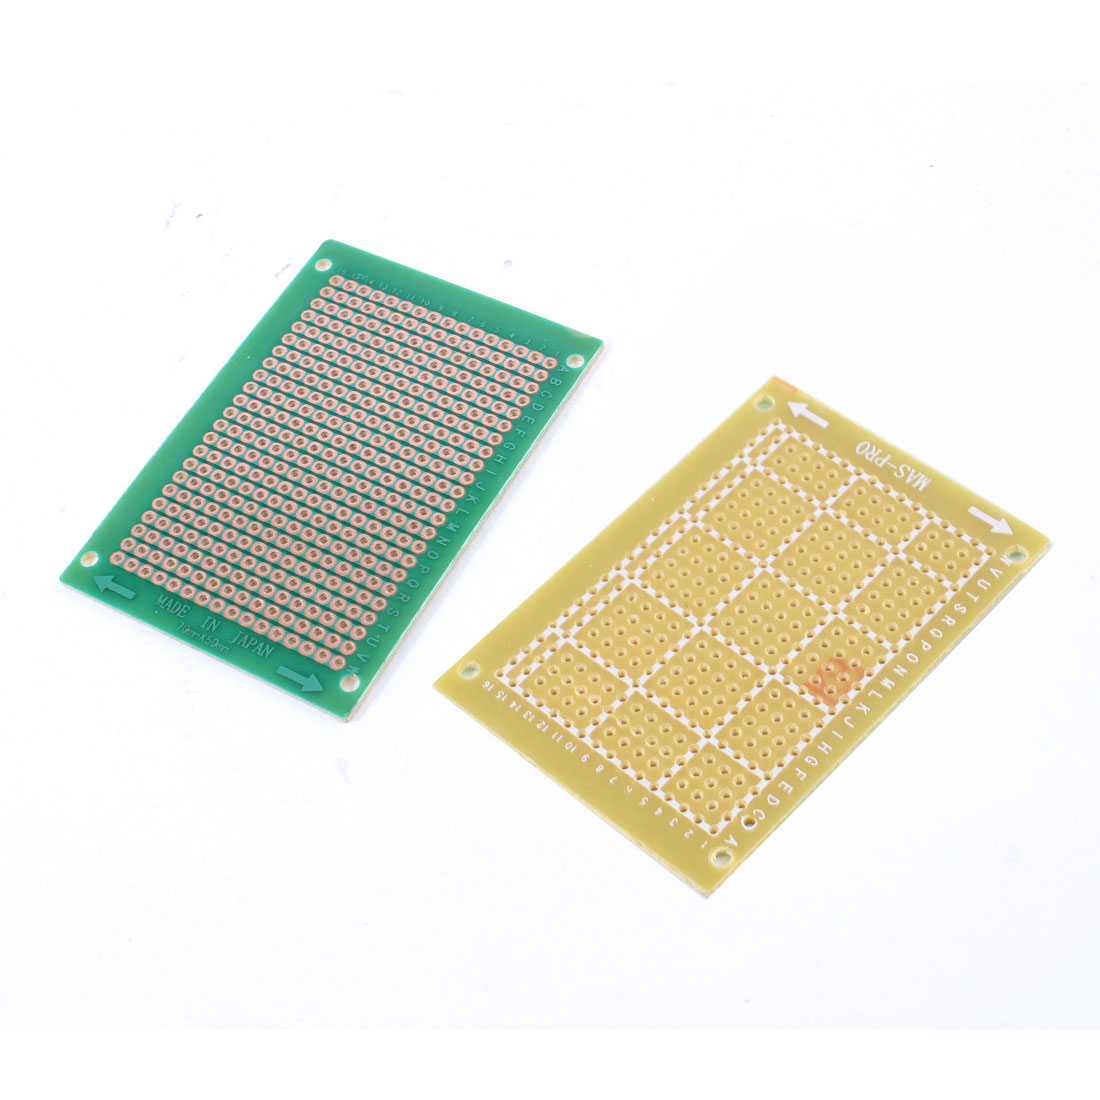 2 Pcs Prototype PCB Circuit Board Universal Stripboard 70x50mm